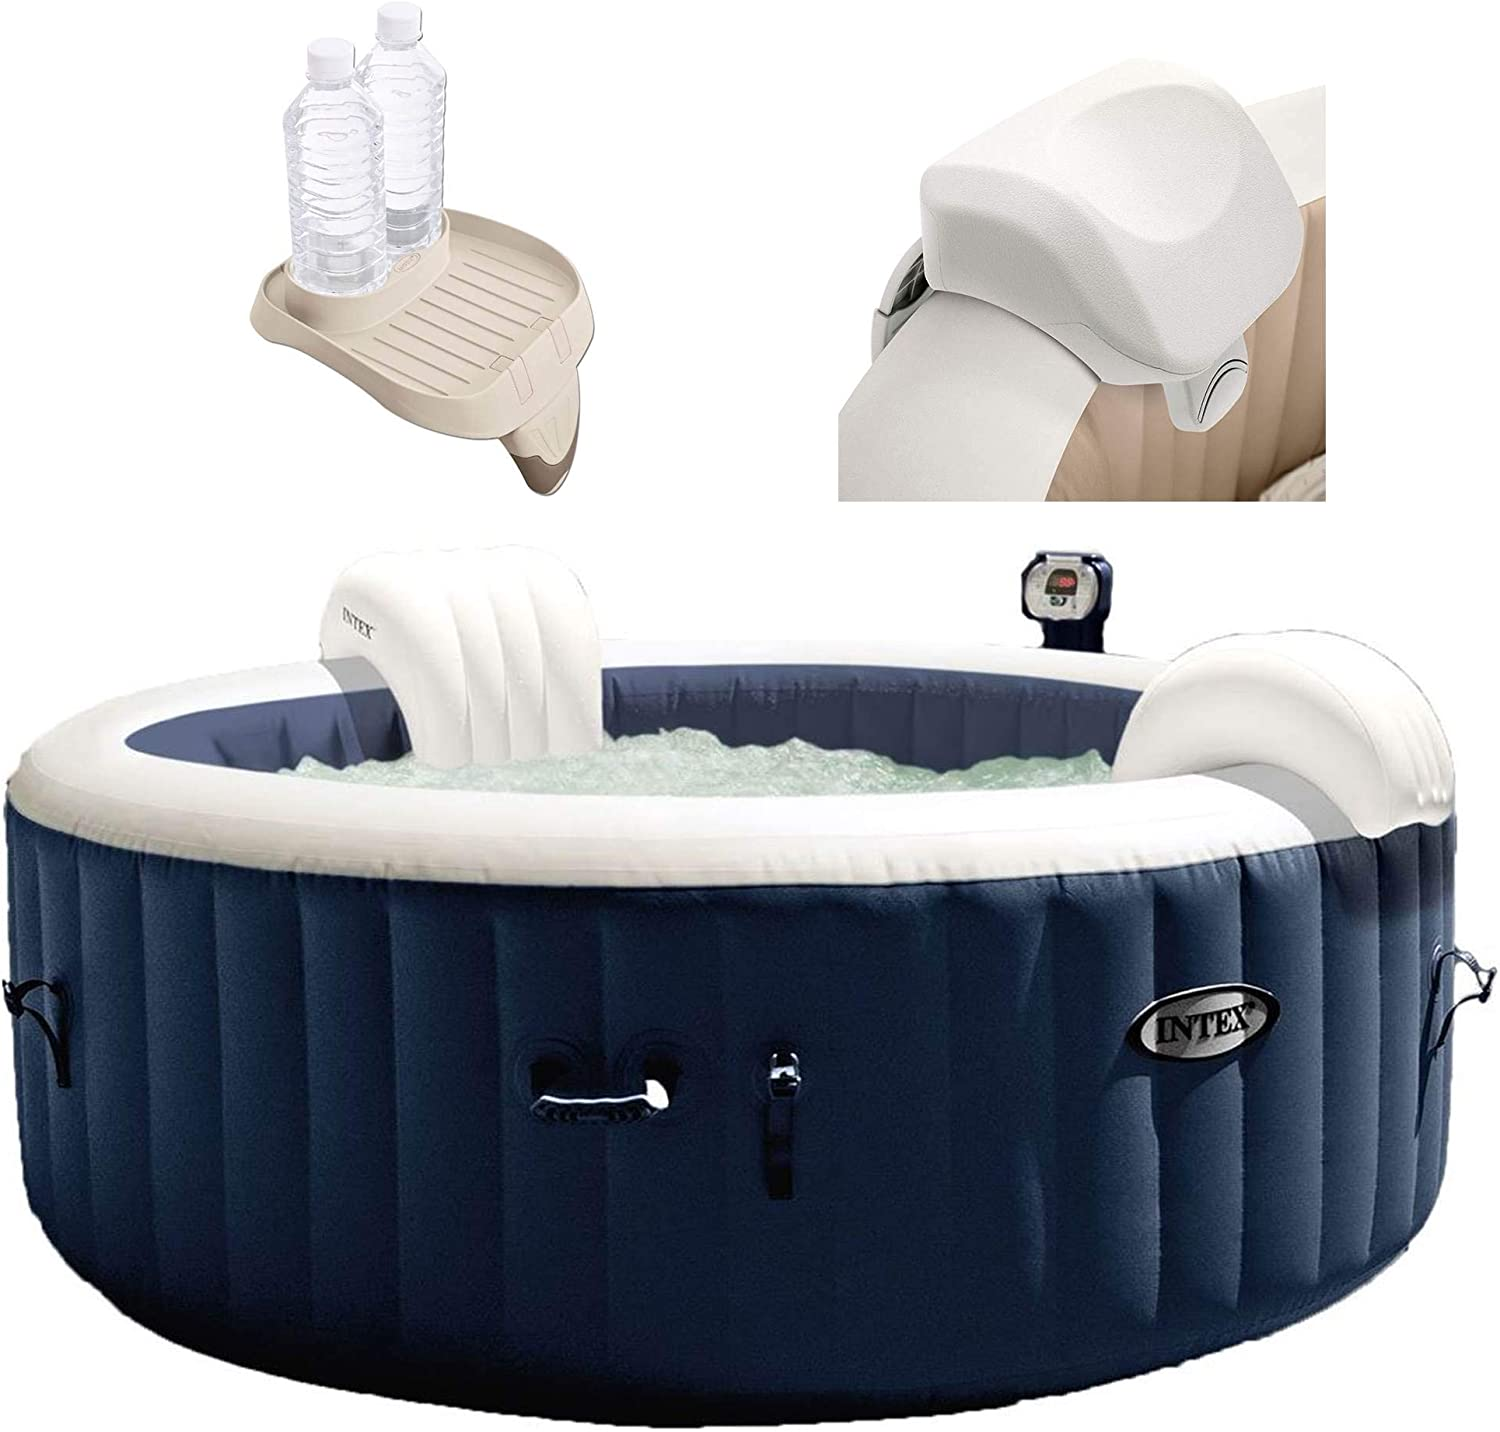 Intex 28405E PureSpa 4 Person Home Outdoor Inflatable Portable Heated Round Hot Tub Spa 58-inch x 28-inch with 120 Bubble Jets, Soft-Foam Headrest, and Drink Cup Holder Tray, Blue